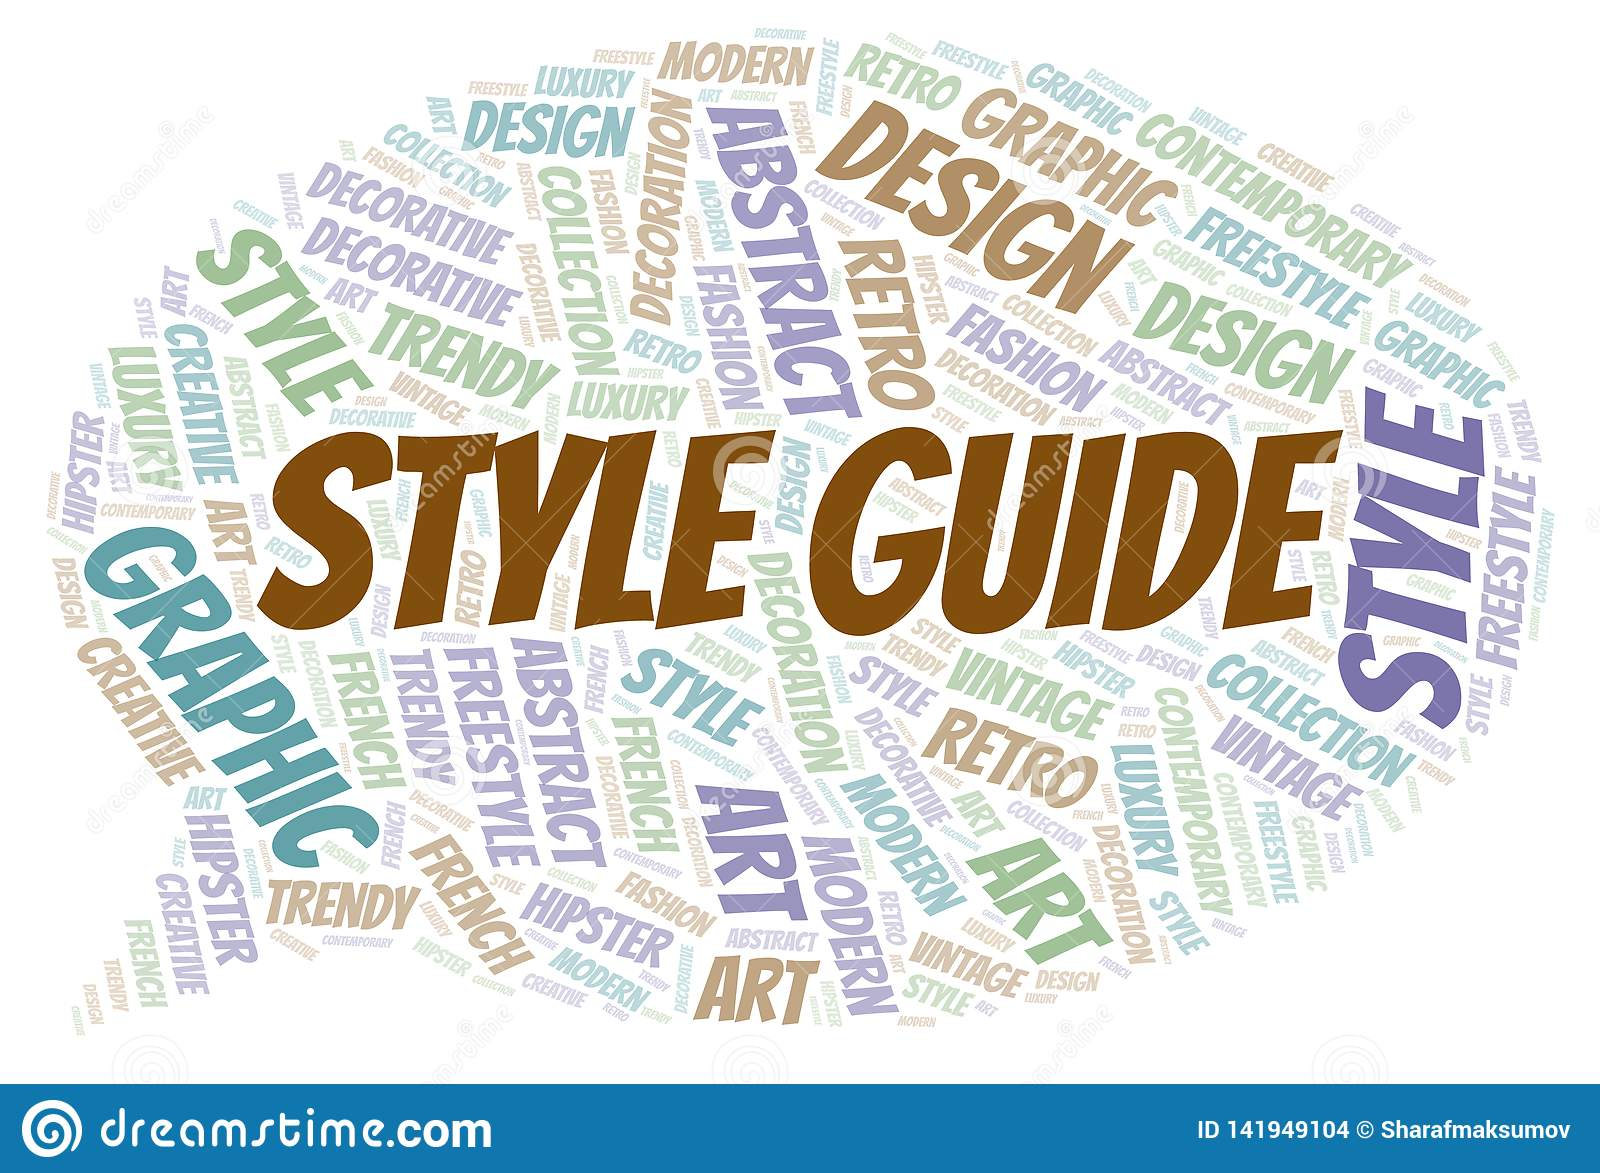 Style Guide word cloud